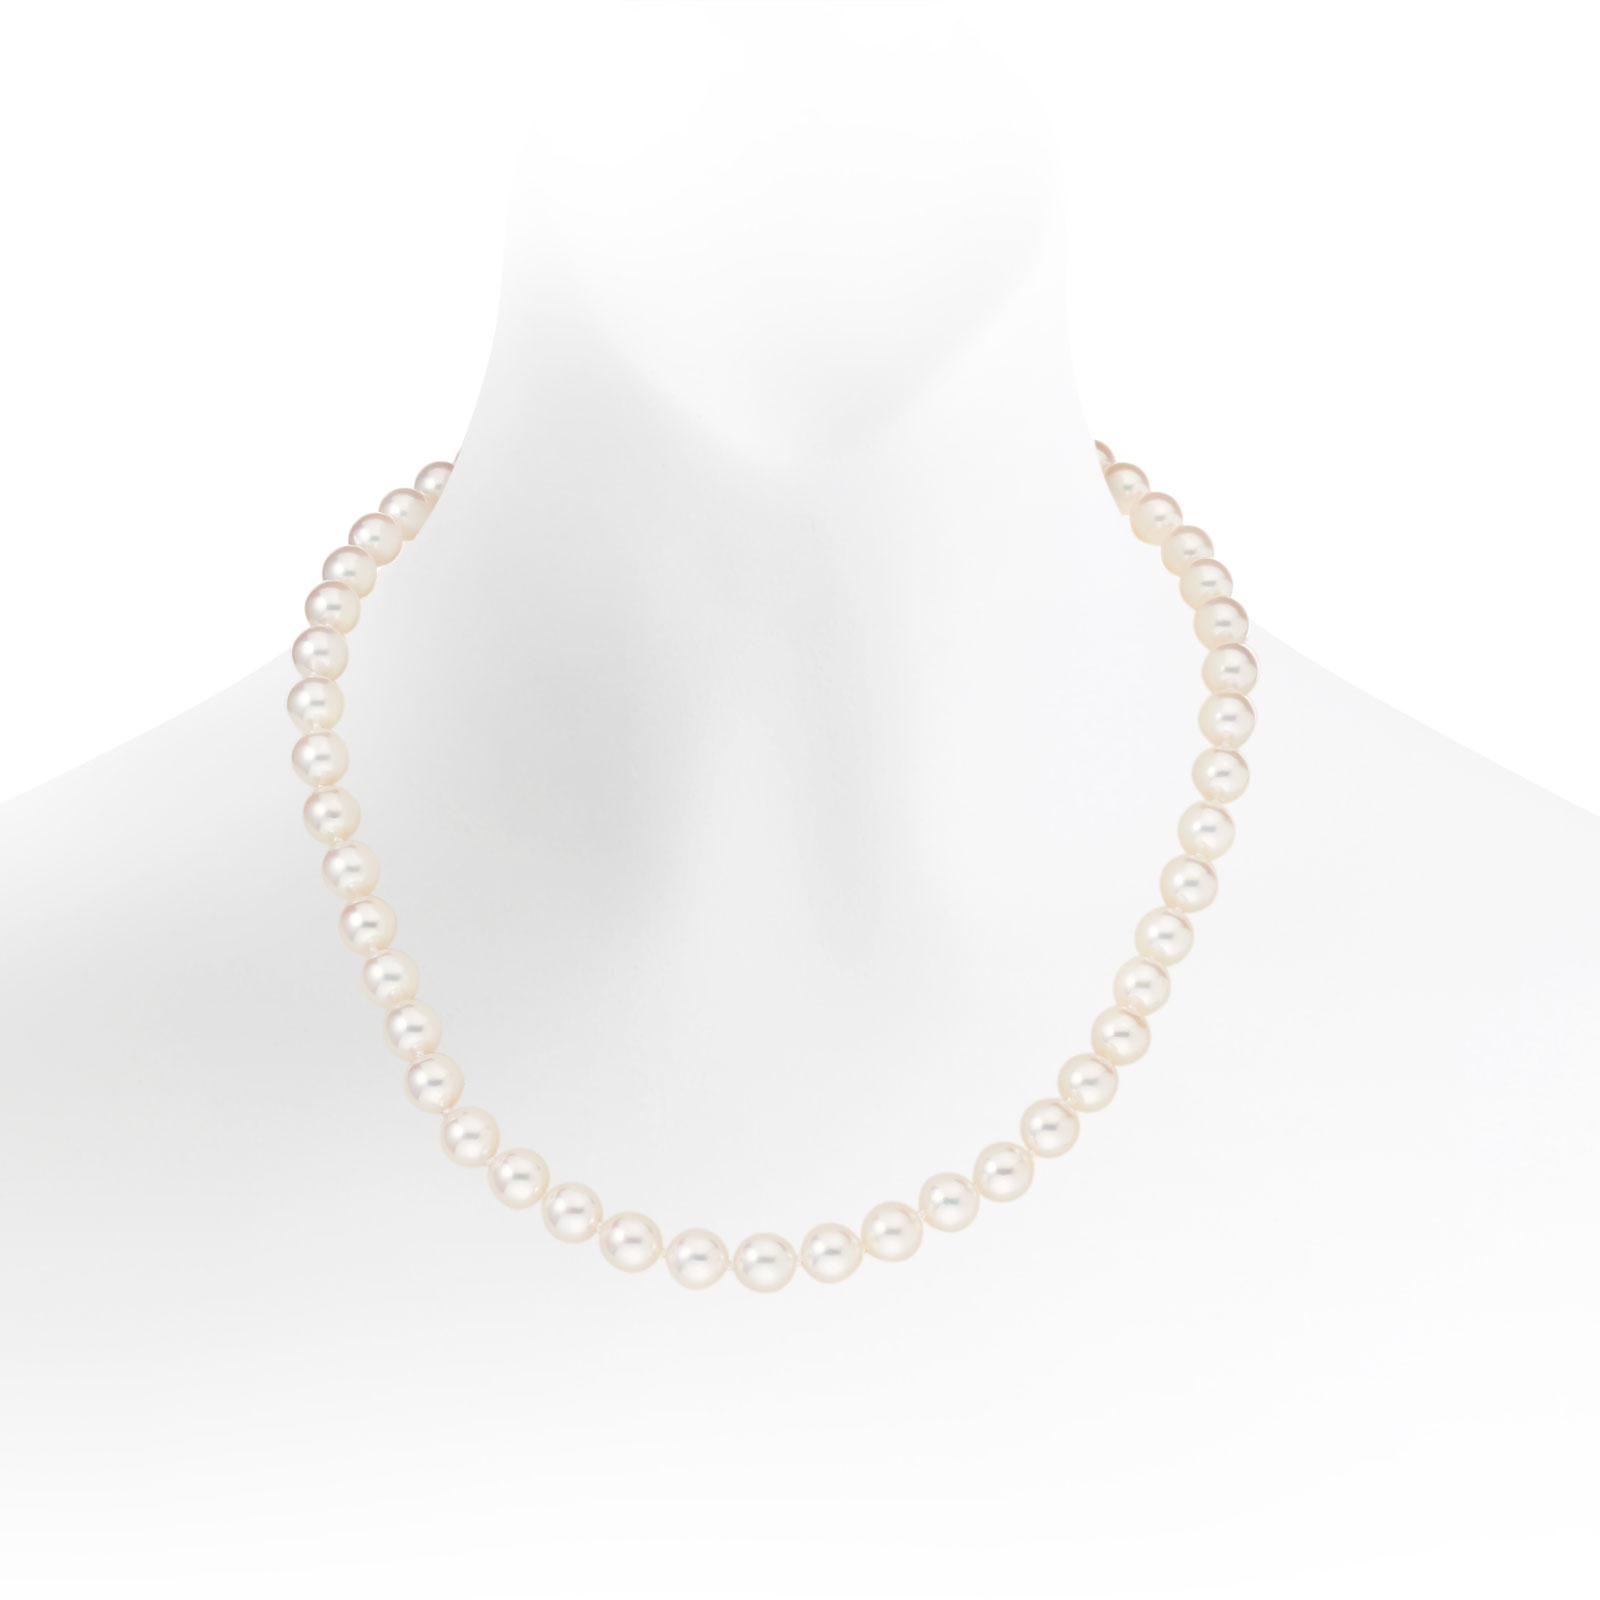 Luxury White Japanese Akoya Pearl Necklace with 18ct Gold-ANVAR00190020-1